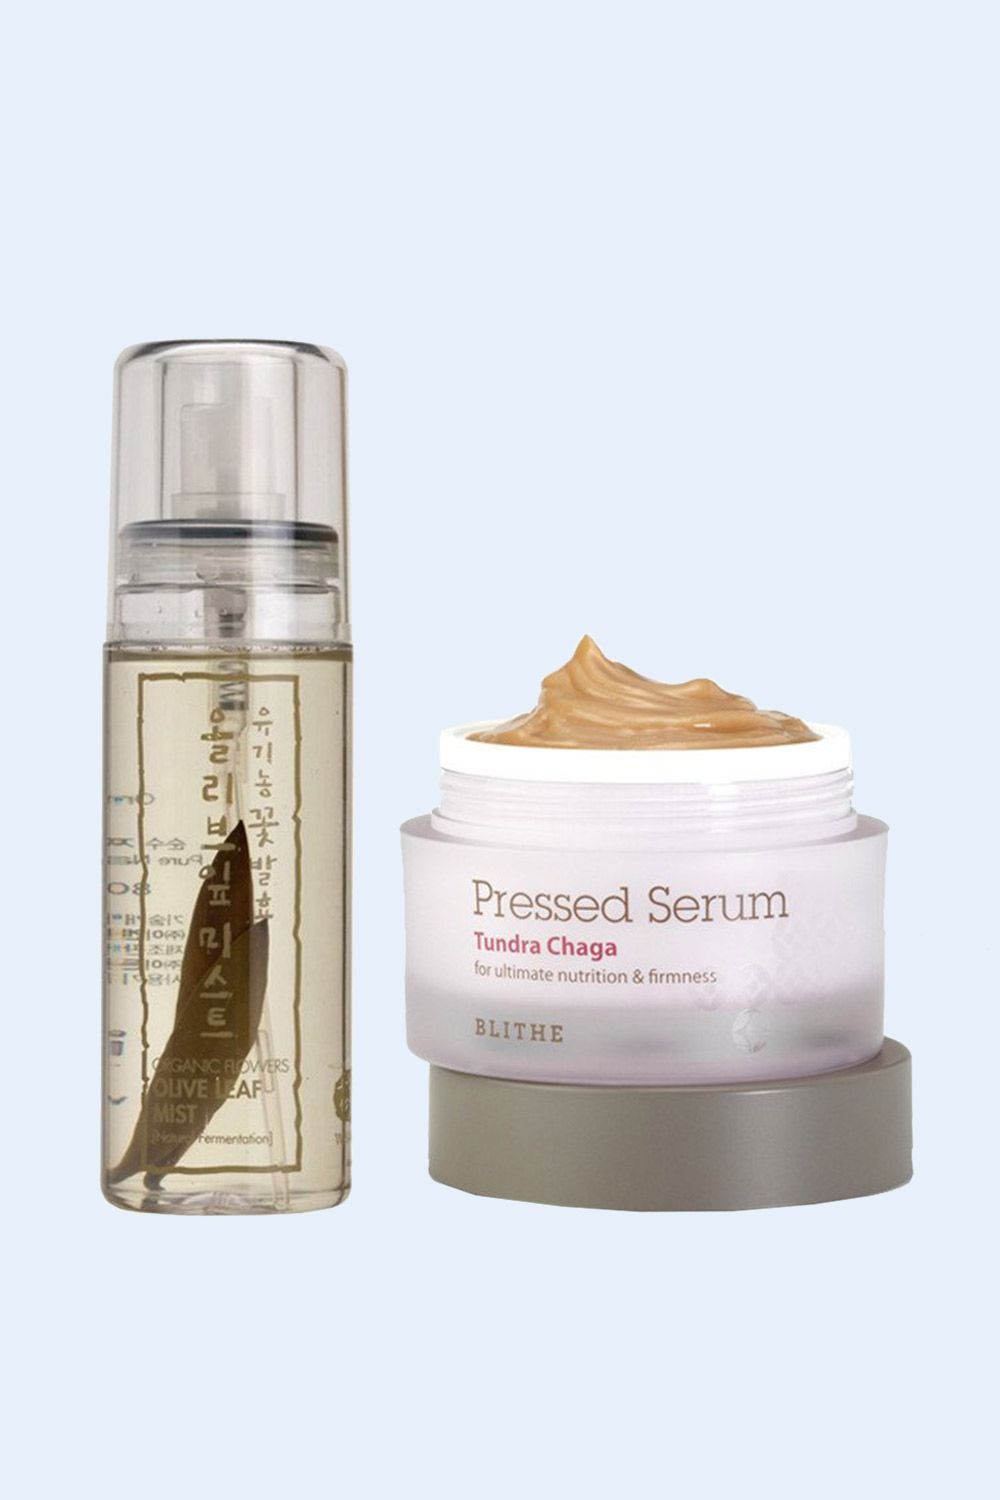 "<p>Natural K-beauty skincare site <a href=""http://www.glowrecipe.com/"" target=""_blank"">Glow Recipe</a> founders Sarah Lee and Christine Change schooled the sharks on the Korean beauty regimen and ended up with a whopping $425,000 investment from Robert Herjavec<span class=""redactor-invisible-space"">. Since then, we've become obsessed with all their offerings, including the revitalizing Whamisa Organic Flowers Olive Leaf Mist and glow-yielding Blithe Tundra Chaga Pressed Serum you'll find in their <em>Shark Tank</em> K-beauty set.</span></p><p><strong><br> </strong></p><p><strong>Glow Recipe Shark Tank Korean Beauty Set, $78; </strong><a href=""http://www.glowrecipe.com/products/shark-tank-korean-beauty-set"" target=""_blank""><strong>glowrecipe.com</strong></a>.</p>"